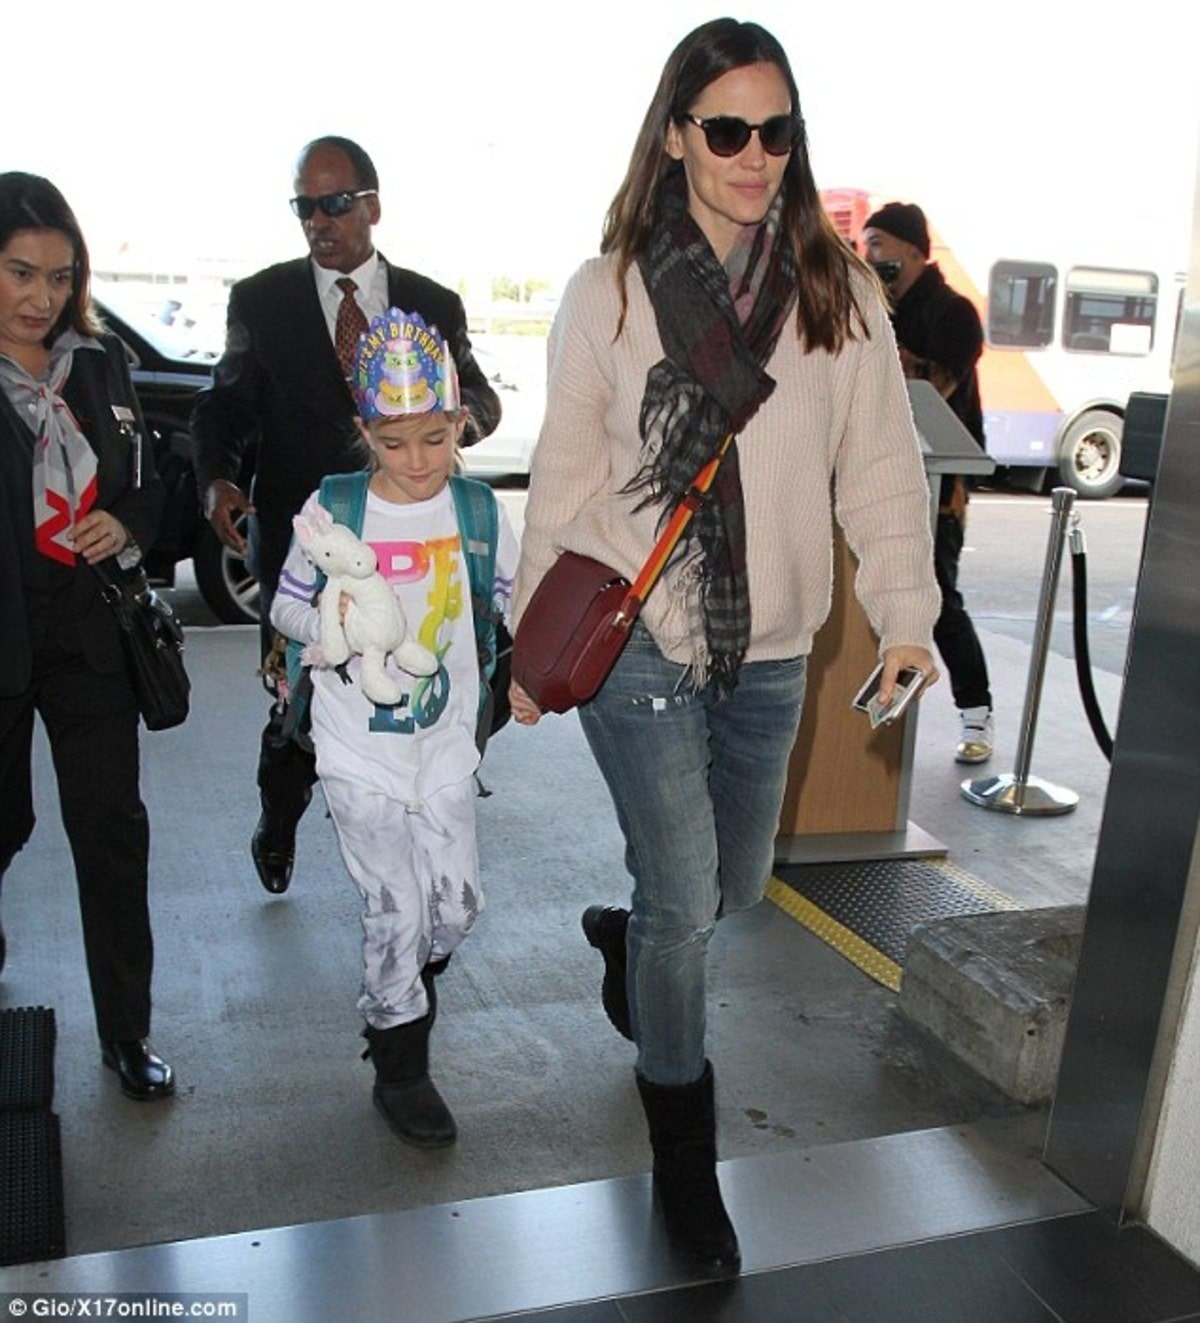 3BE7B62400000578-0-Off_and_away_Jennifer_Garner_was_spotted_on_Friday_at_LAX_Airpor-m-83_1483739082068